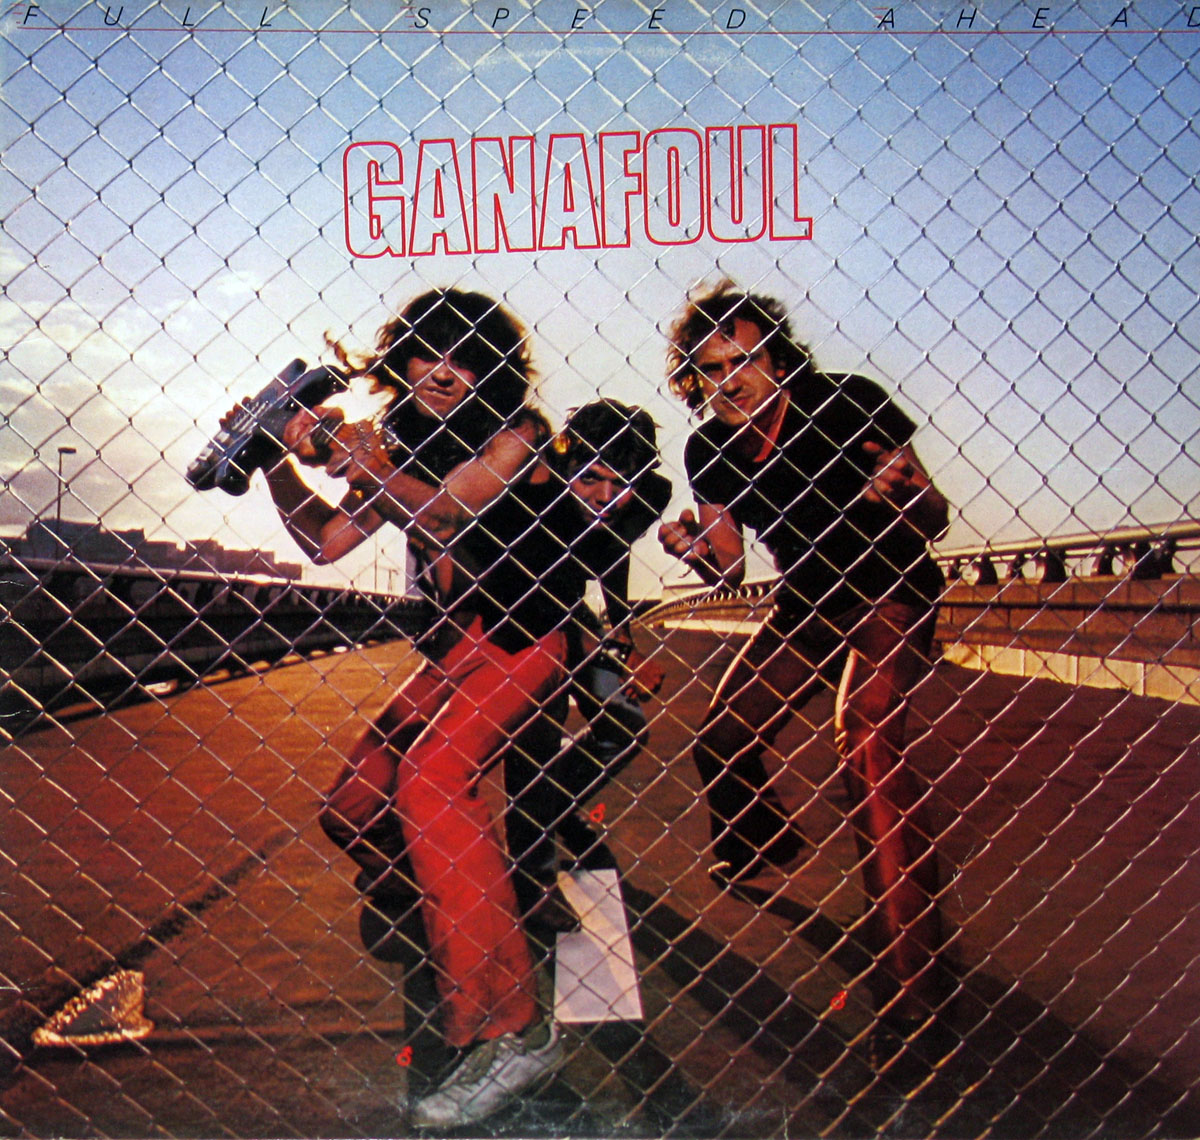 High Resolution Photo # GANAFOUL Full Speed Ahead Vinyl Record